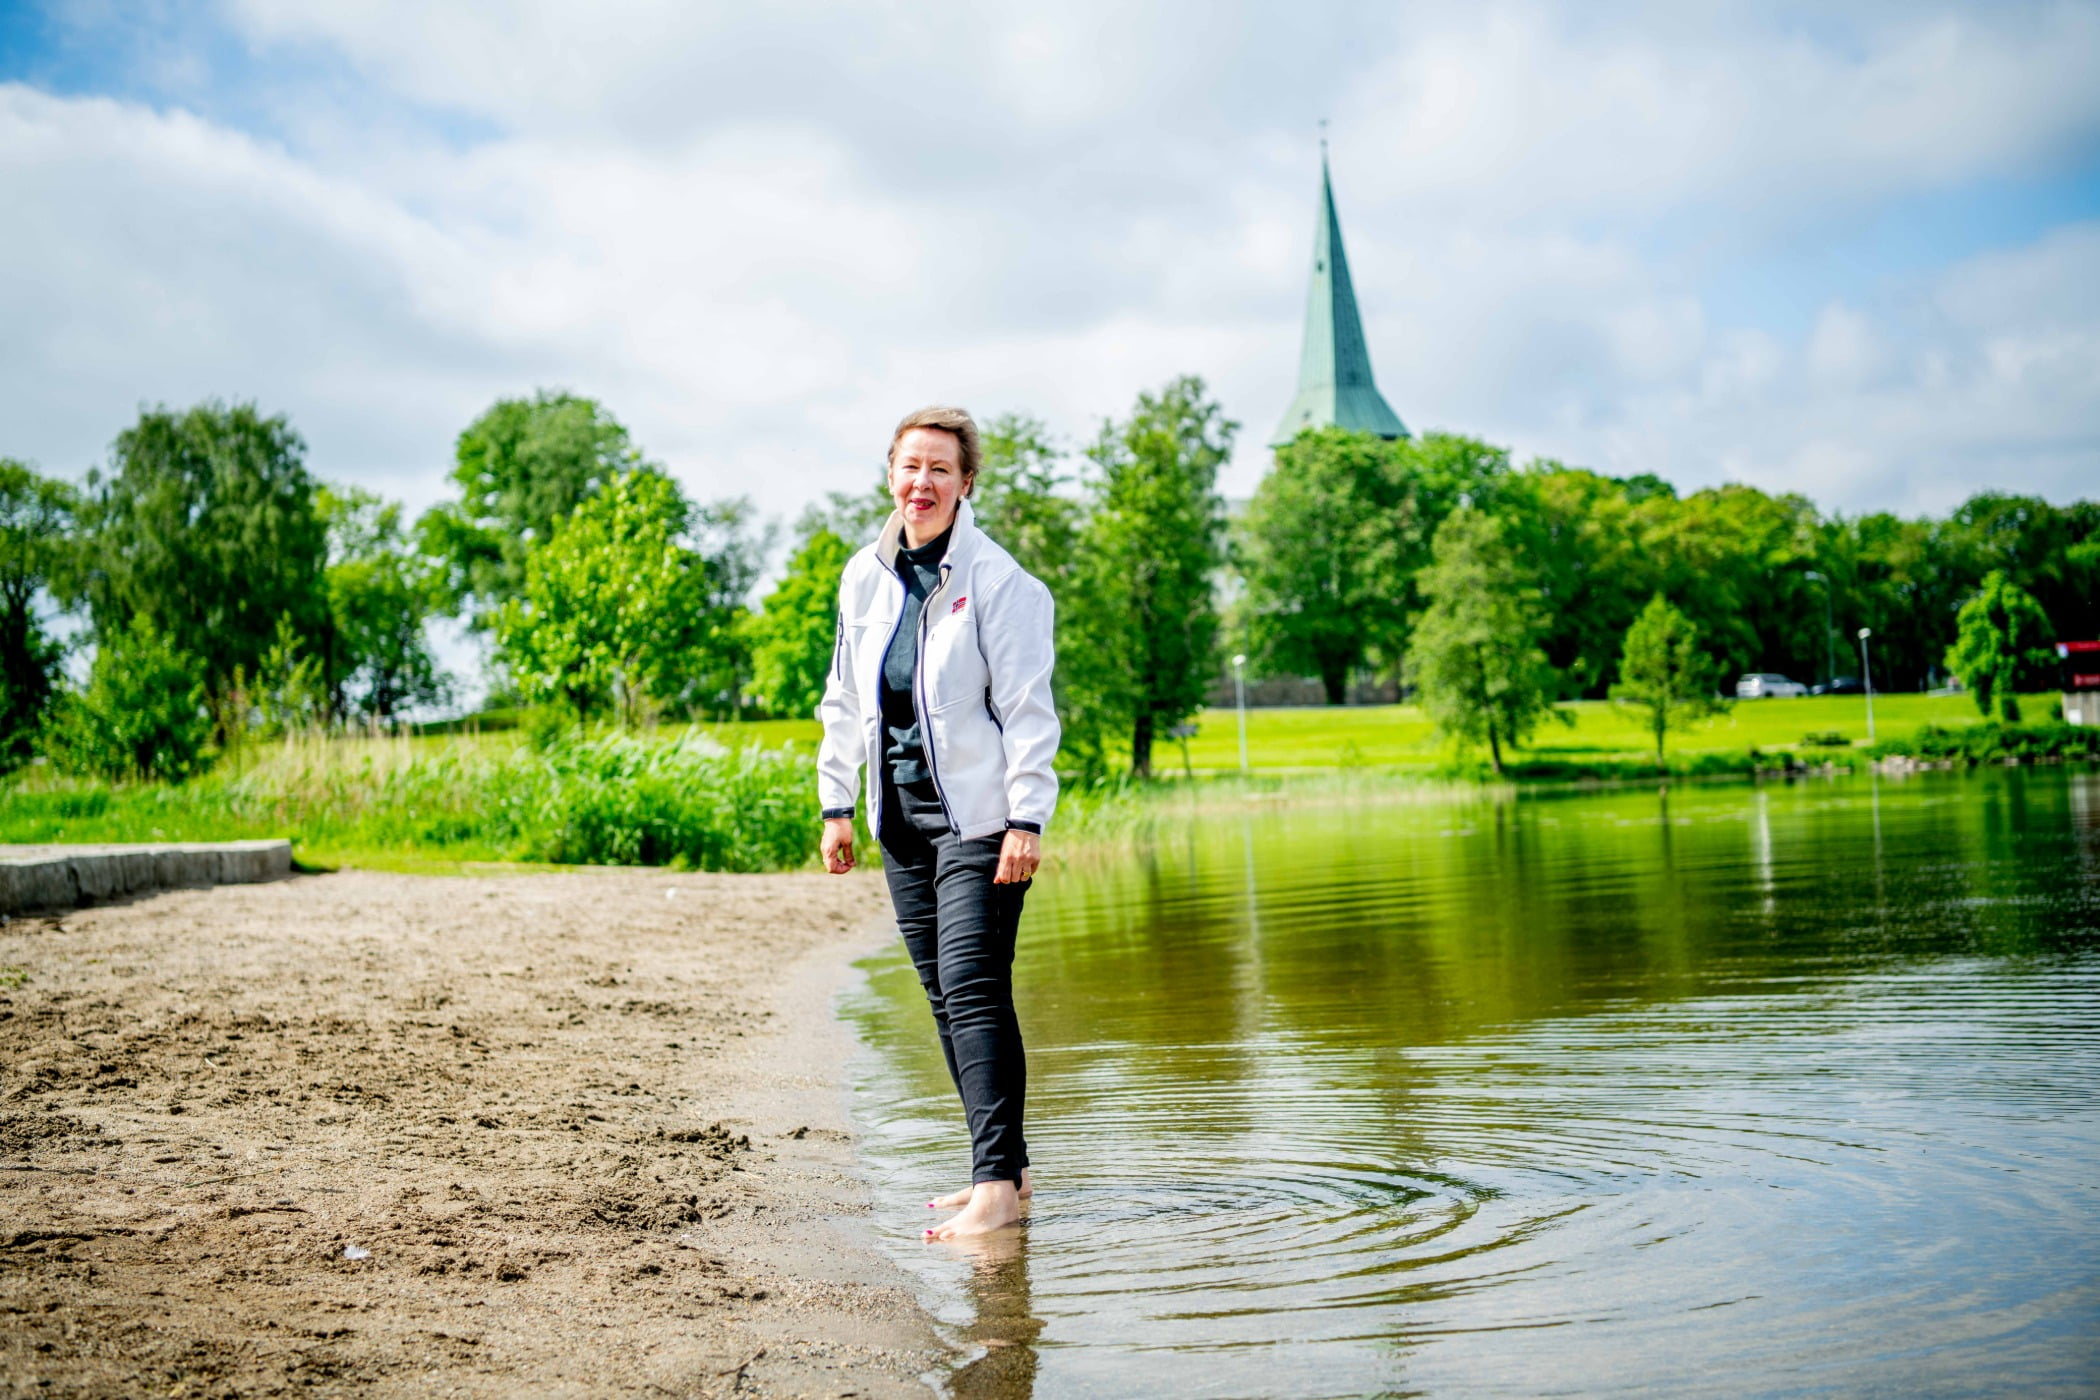 People in nature, Natural landscape, Cloud, Water, Sky, Trousers, Plant, Green, Tree, Lake